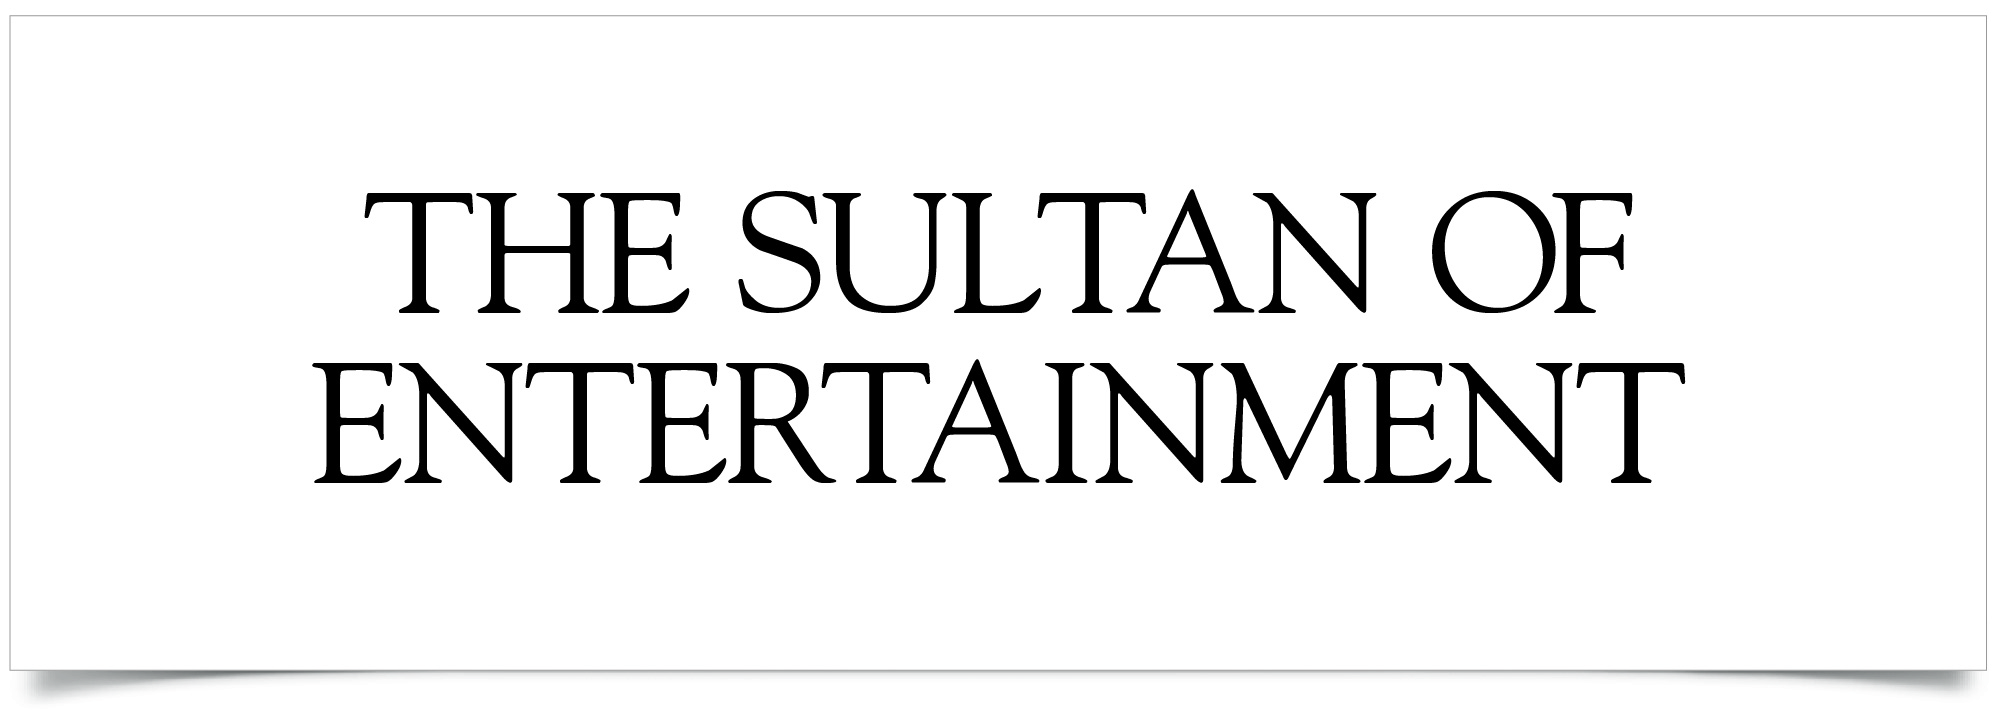 The Sultan of Entertainment-10.jpg